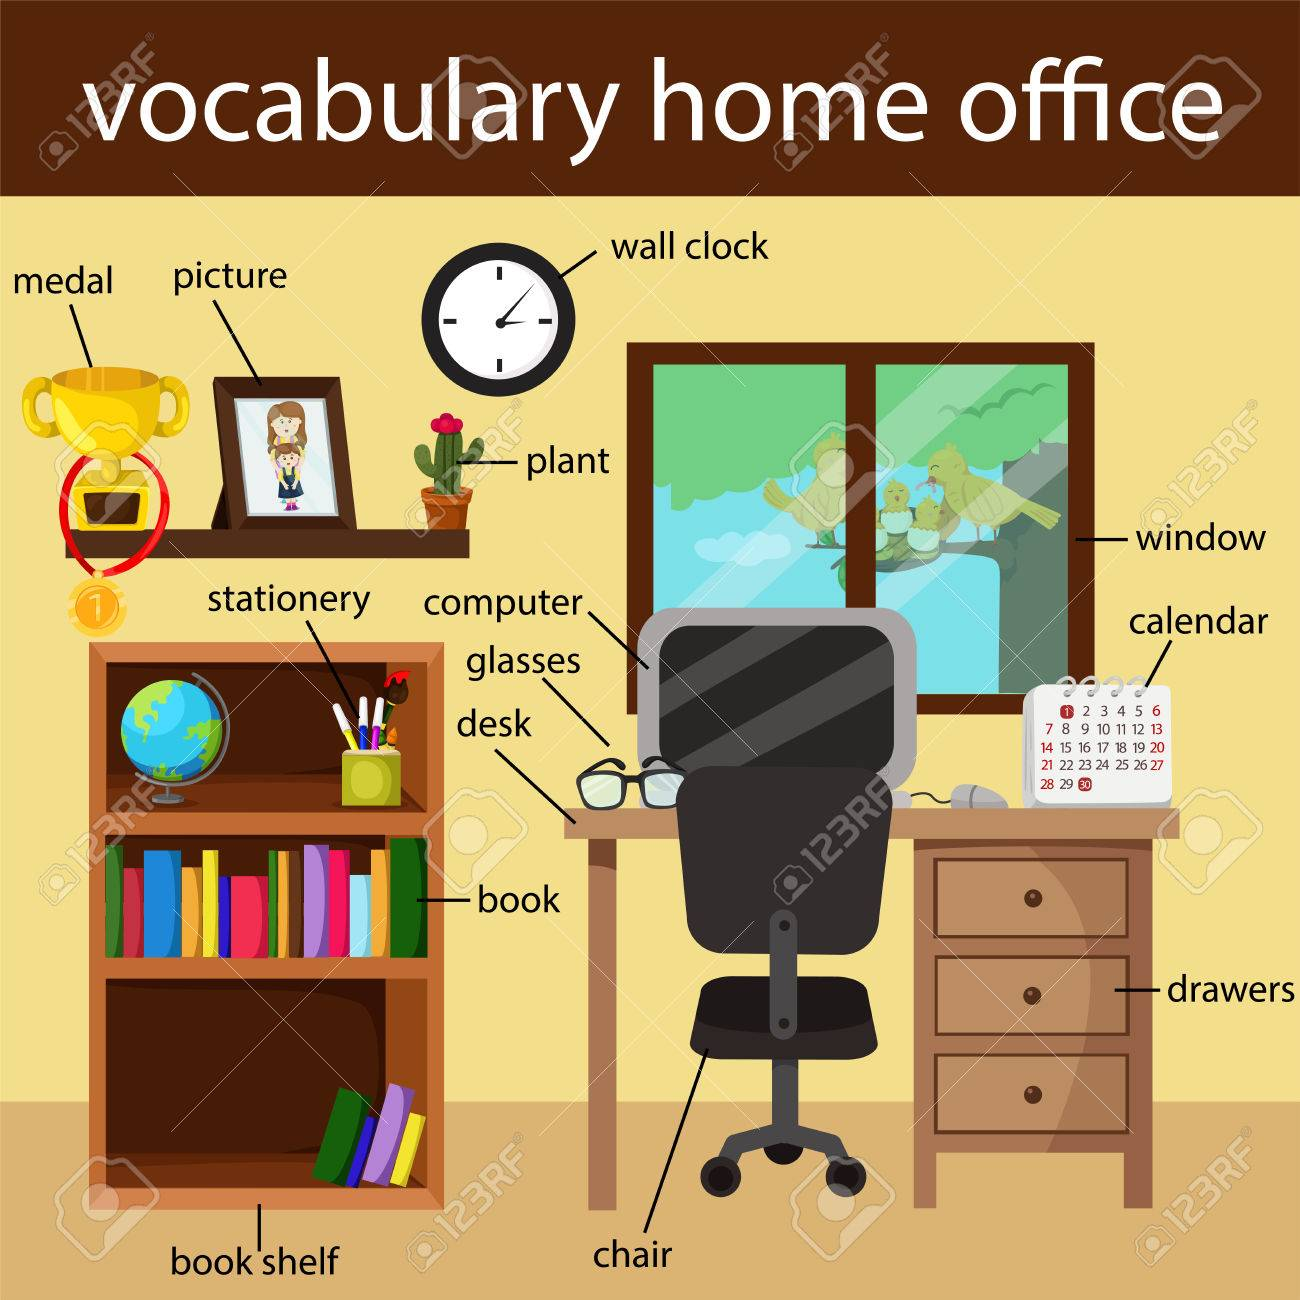 Illustrator Of Vocabulary Home Office Royalty Free Cliparts Vectors